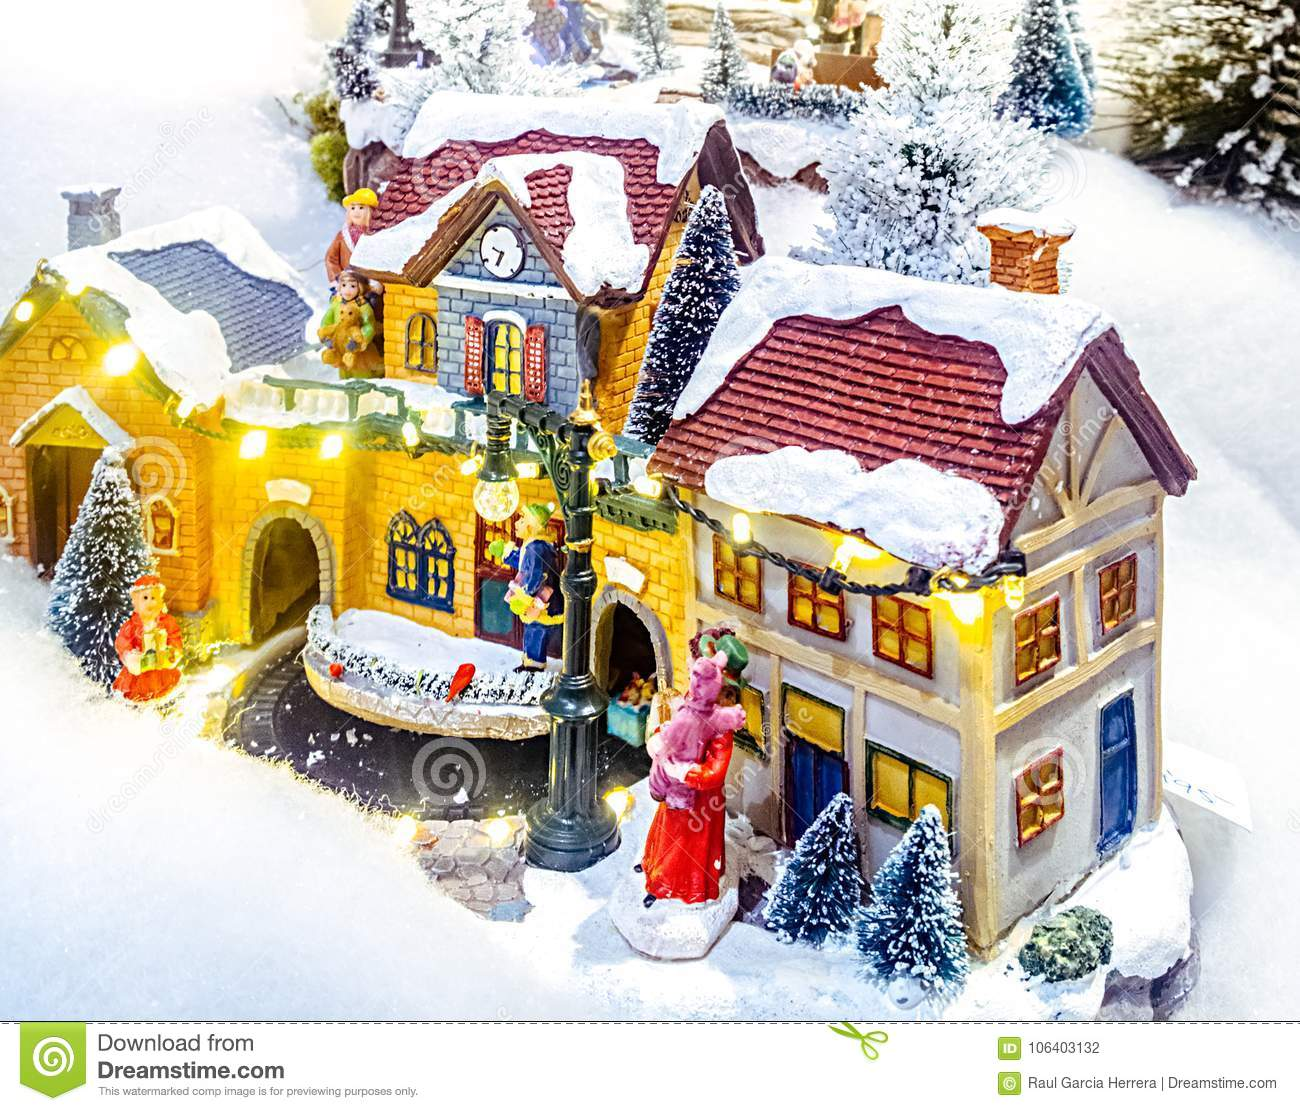 miniature christmas village scene christmas decorations toys - Miniature Christmas Village